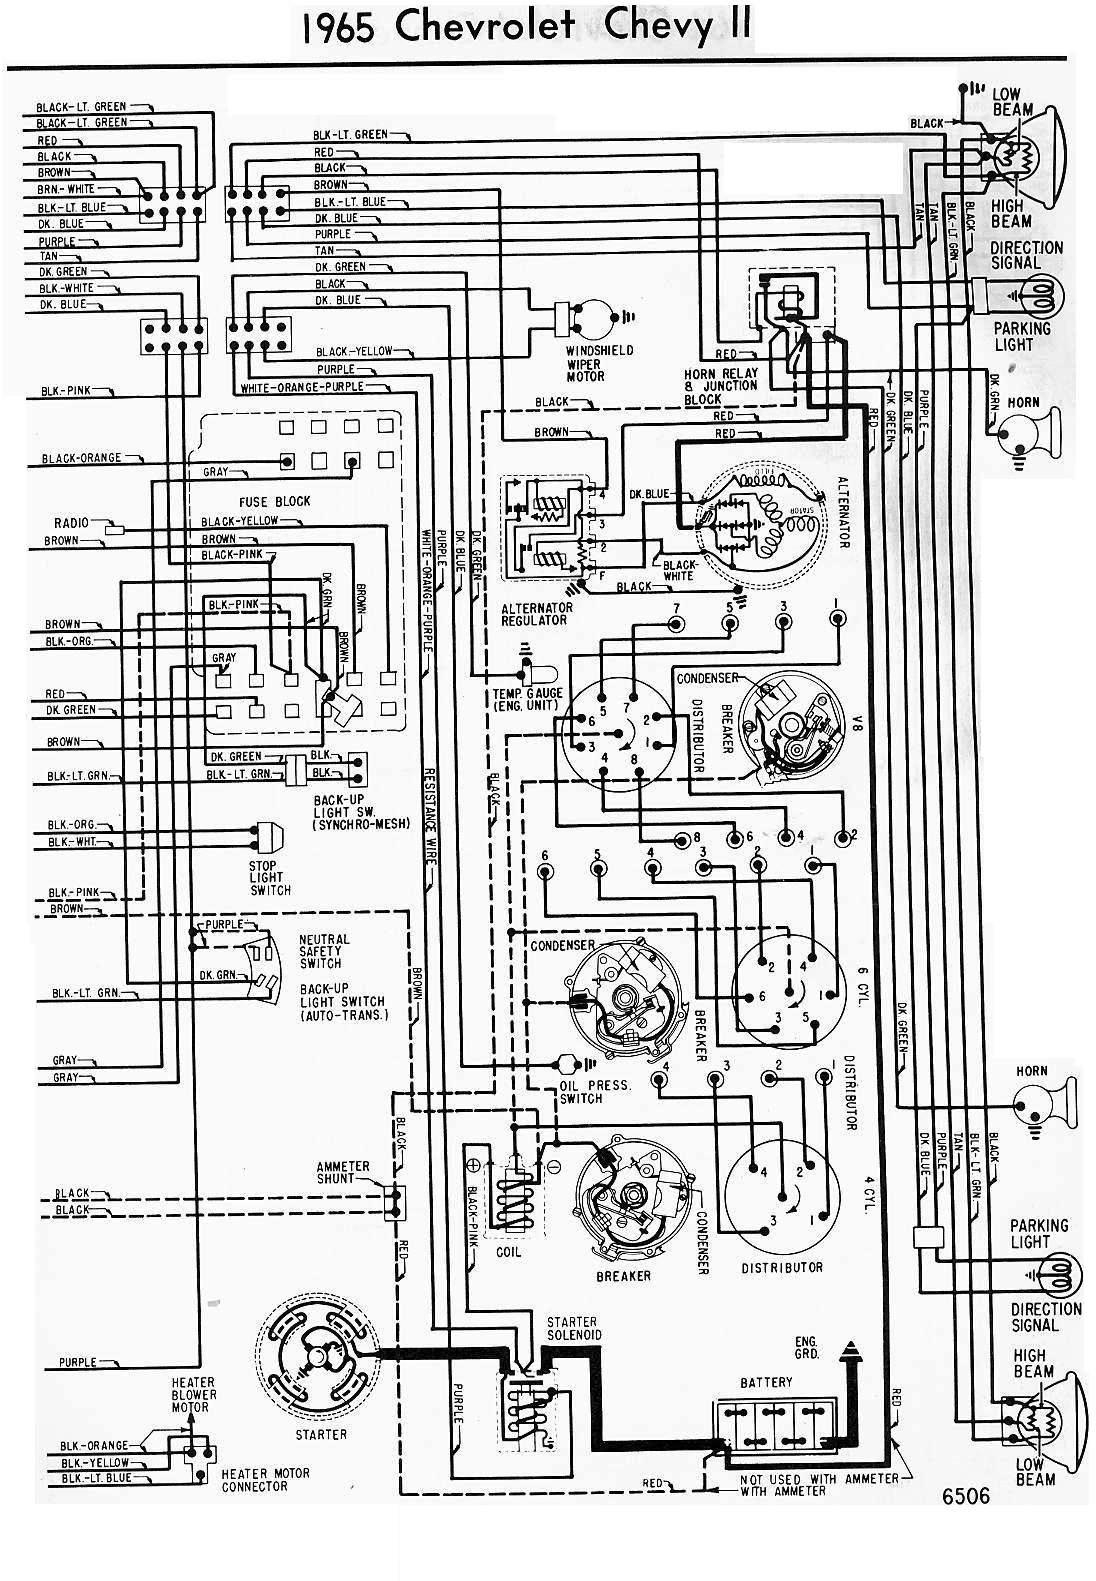 1965 Chevrolet Chevy II Wiring Diagram | All about Wiring